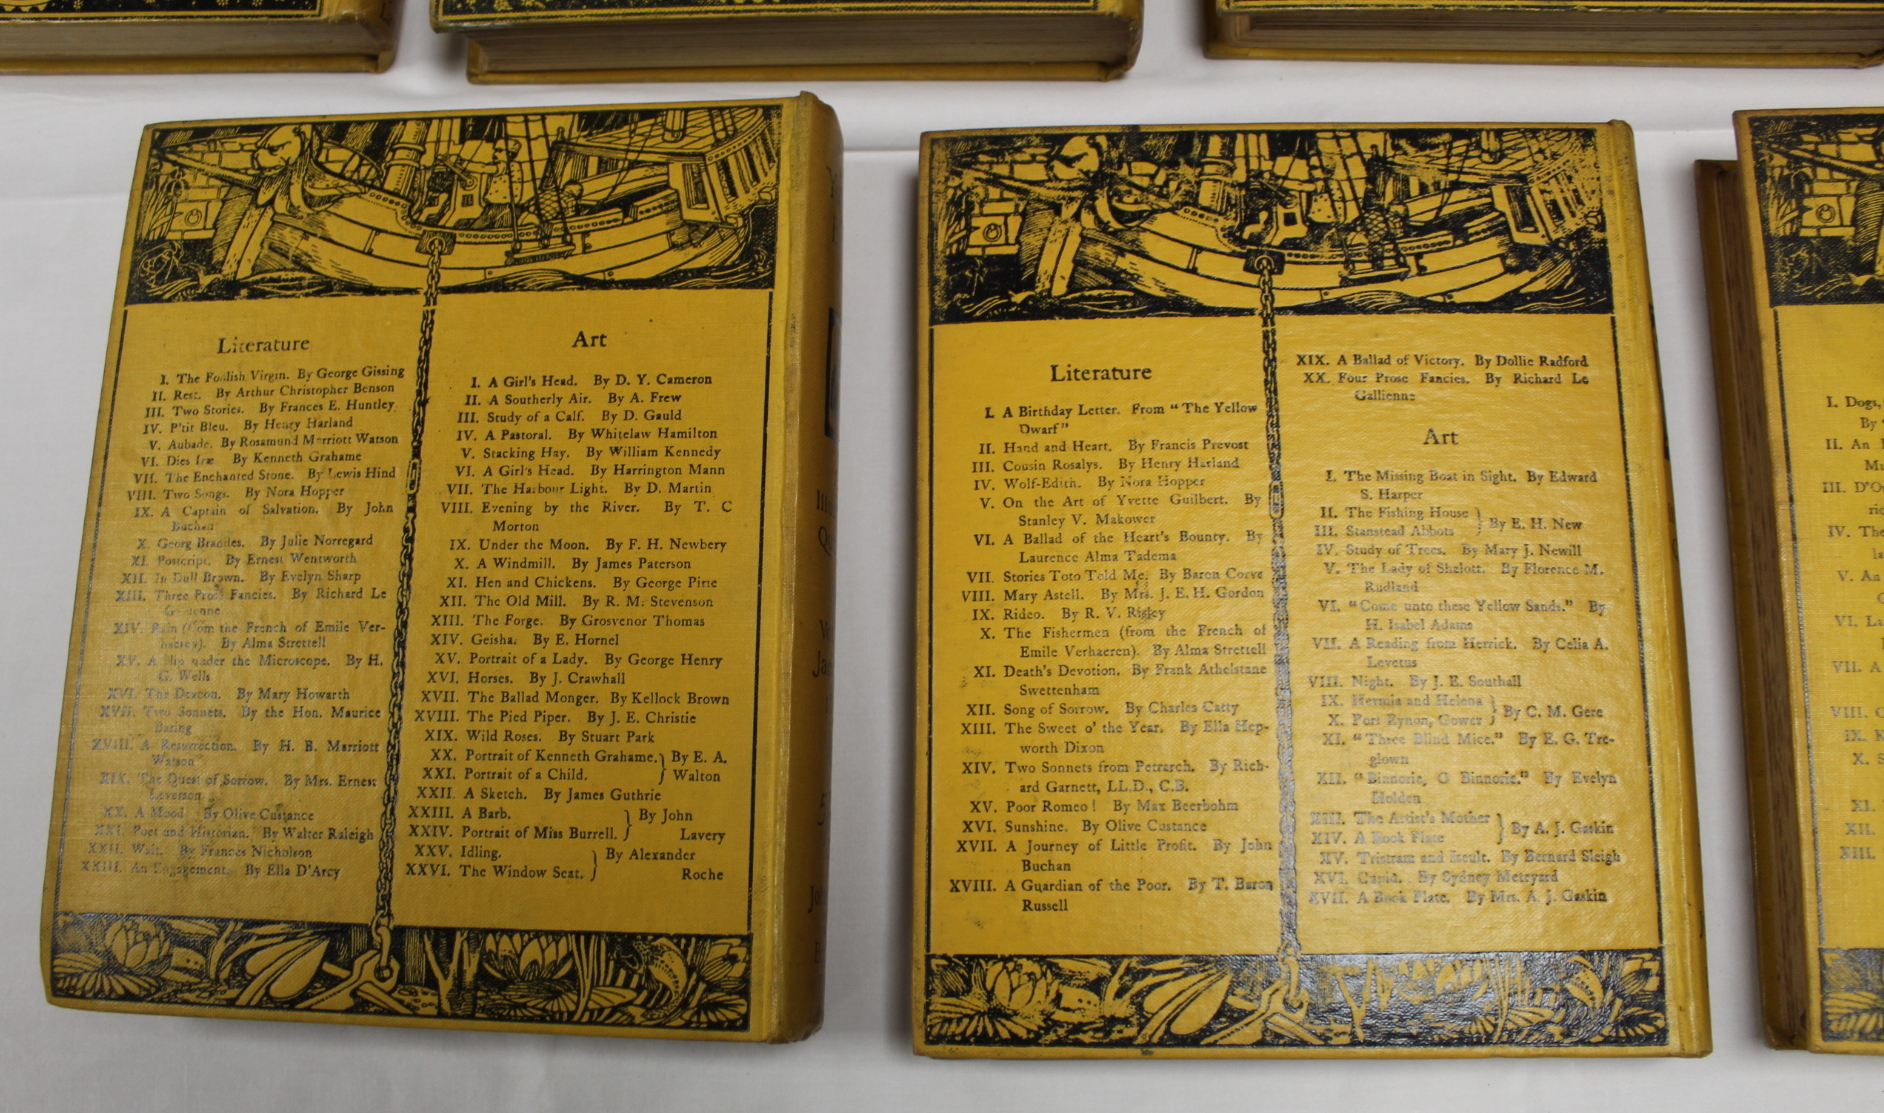 THE YELLOW BOOK.An Illustrated Quarterly. A set of 13 vols., many fine illus. Small quarto. - Image 42 of 45